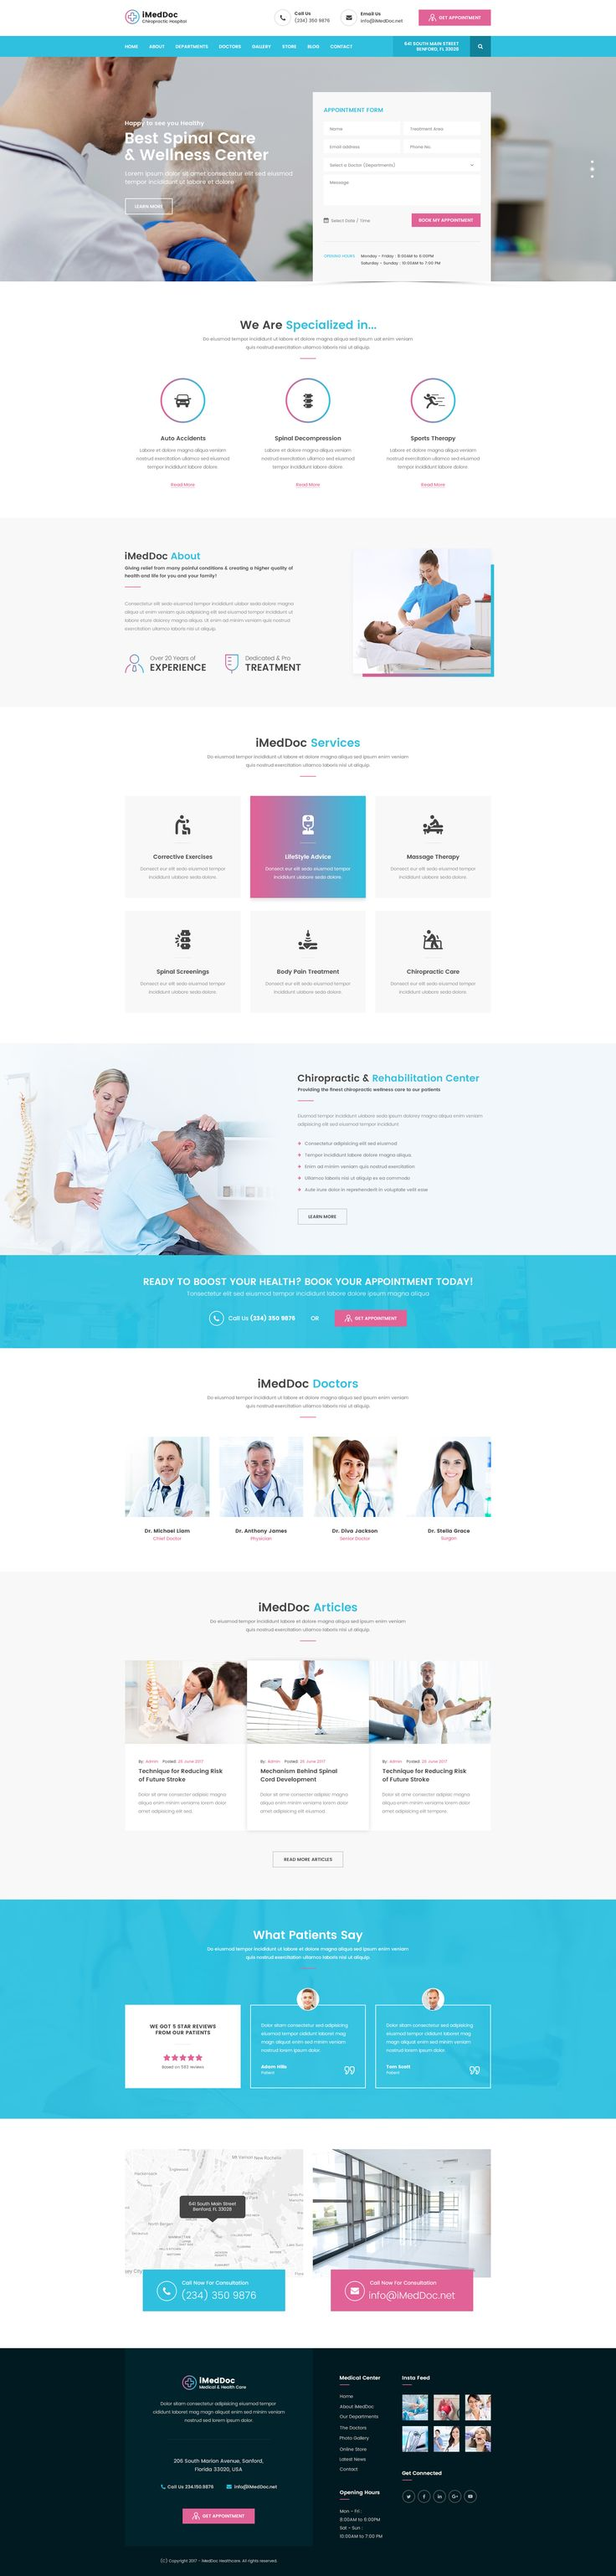 Download iMedDoc Medical Center and Health Care HTML5 Template Best Unique Website Themes for Doctors Hospitals Clinics https://themeforest.net/item/imeddoc-medical-center-health-and-wellness-html5-template/20471343?ref=microedges  #iMedDoc #Medical #MedicalCenter #Health #HealthCare #HTML5 #HTML5Templates #Templates #Best #Unique #Website #Themes #Doctors #Hospitals #Treatments #Cure #HTML5Design #Design #Downloads #Wellness #Fitness #Medicine #Clinic #Dentist #MediCare #Pharmacy #Surgeon